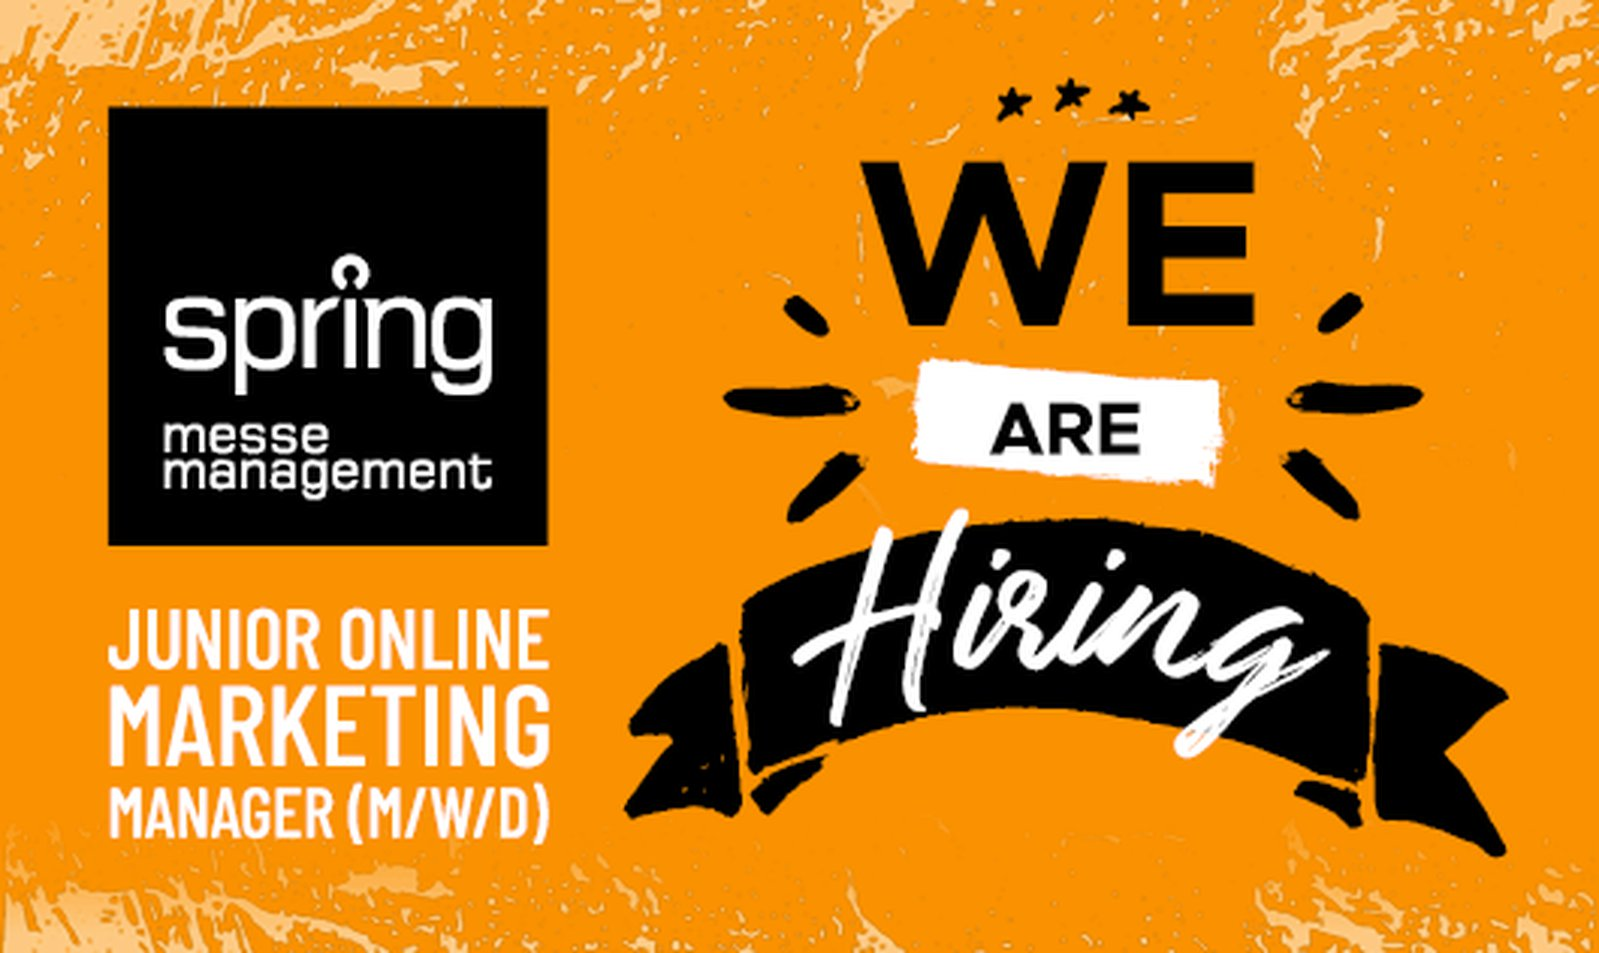 spring we are hiring Online Marketing Manager